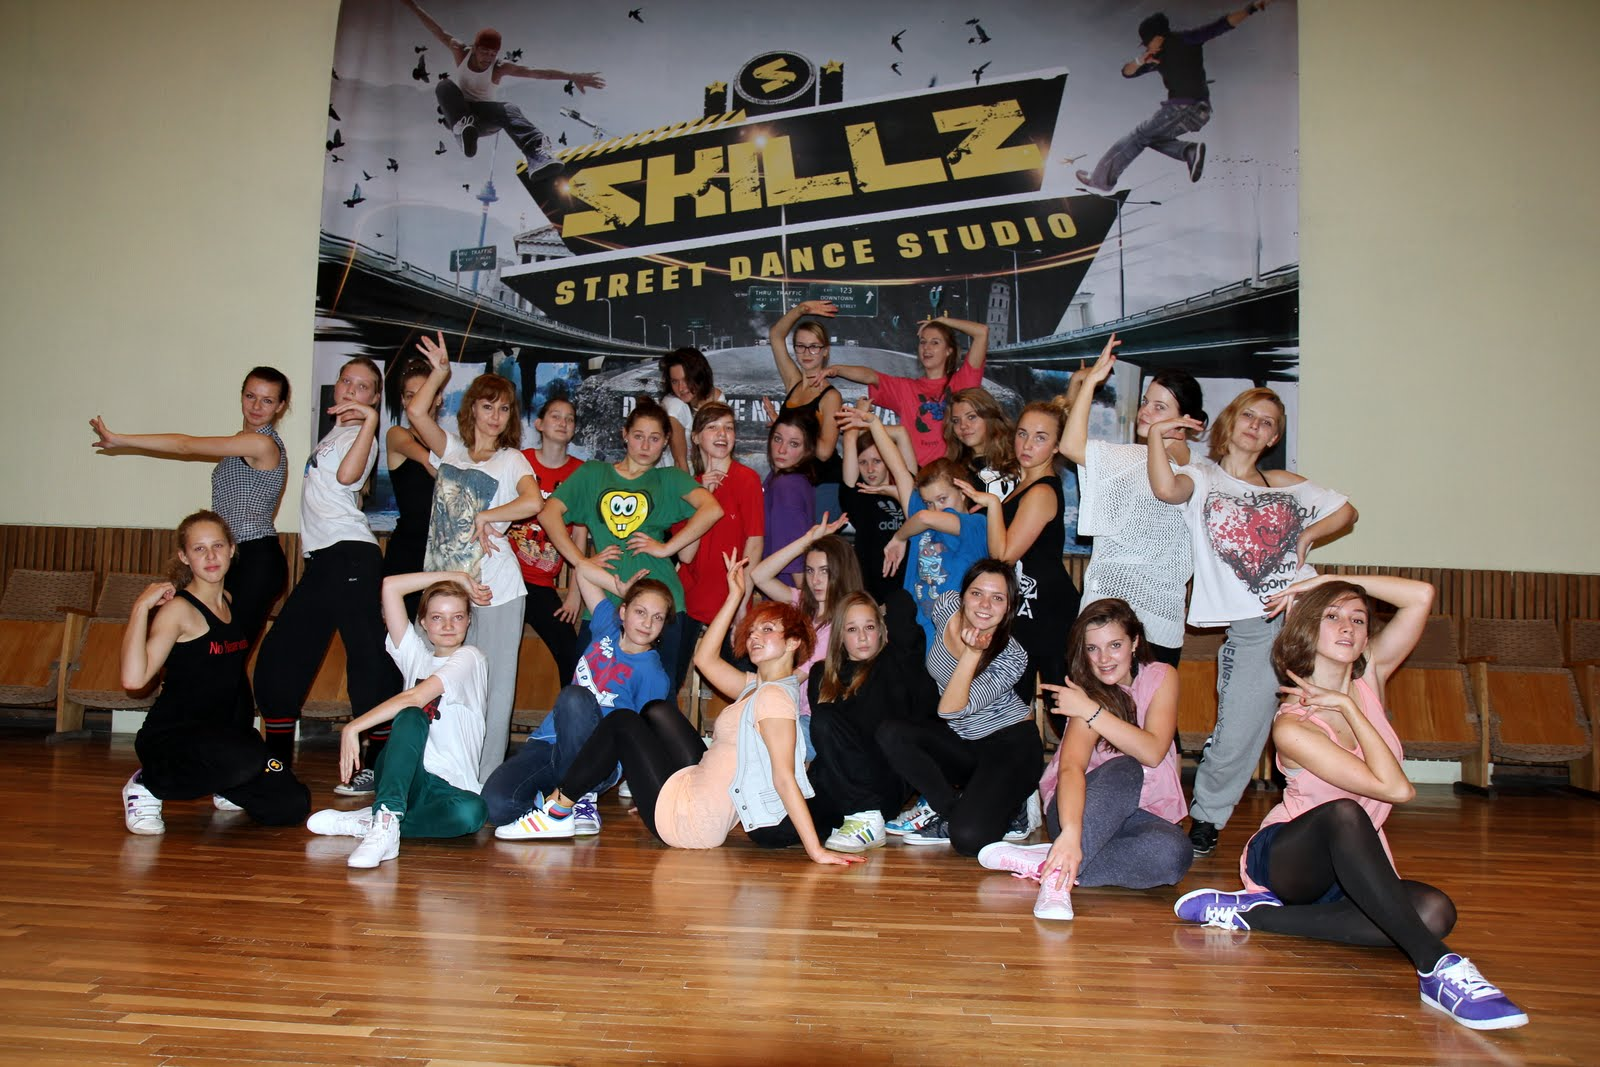 Waacking workshop with Nastya (LV) - IMG_2081.JPG